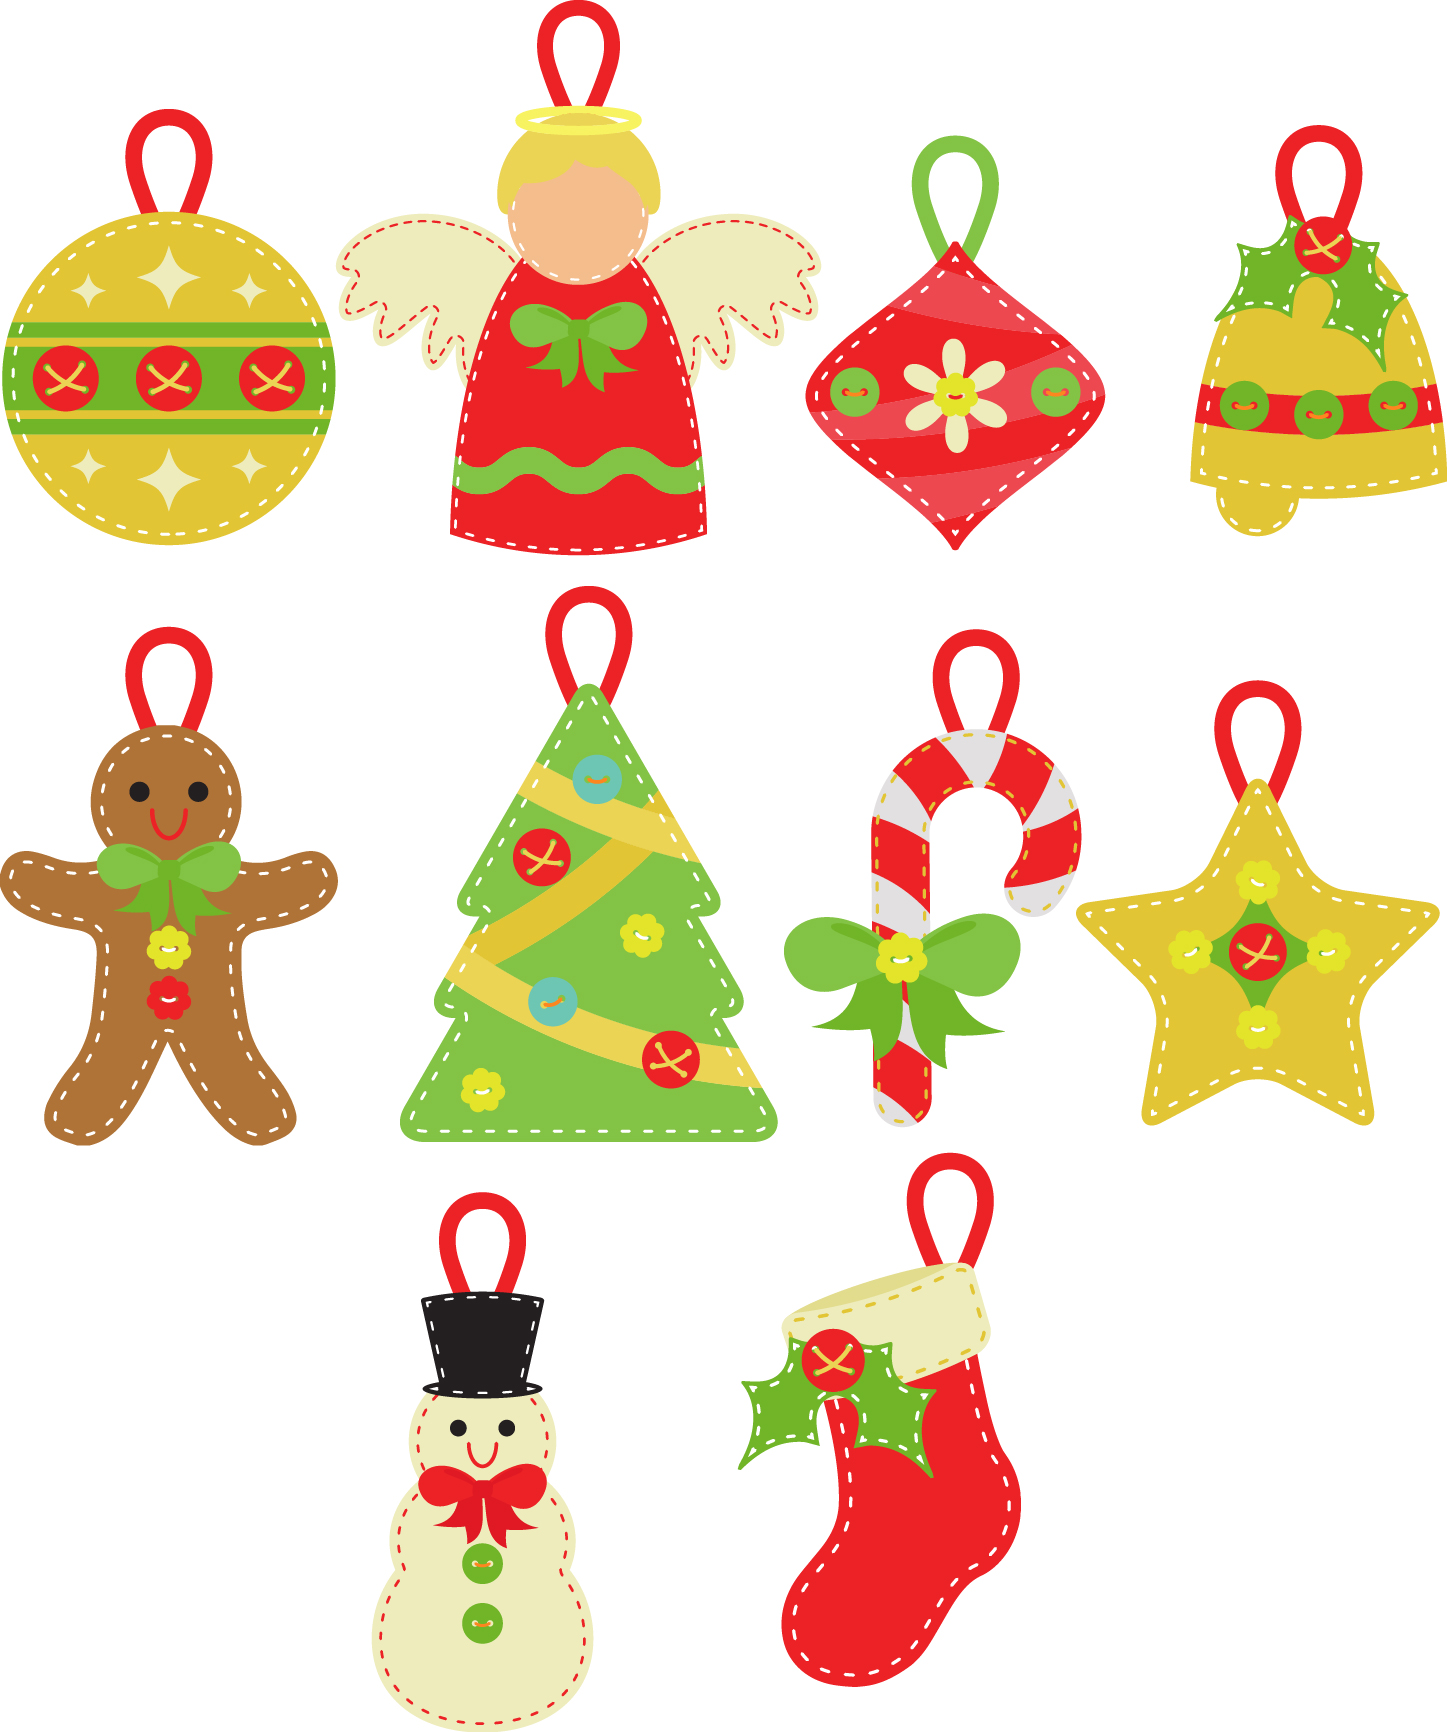 Christmas Set Semi Exclusive Clip Art Set For Digitizing and More.